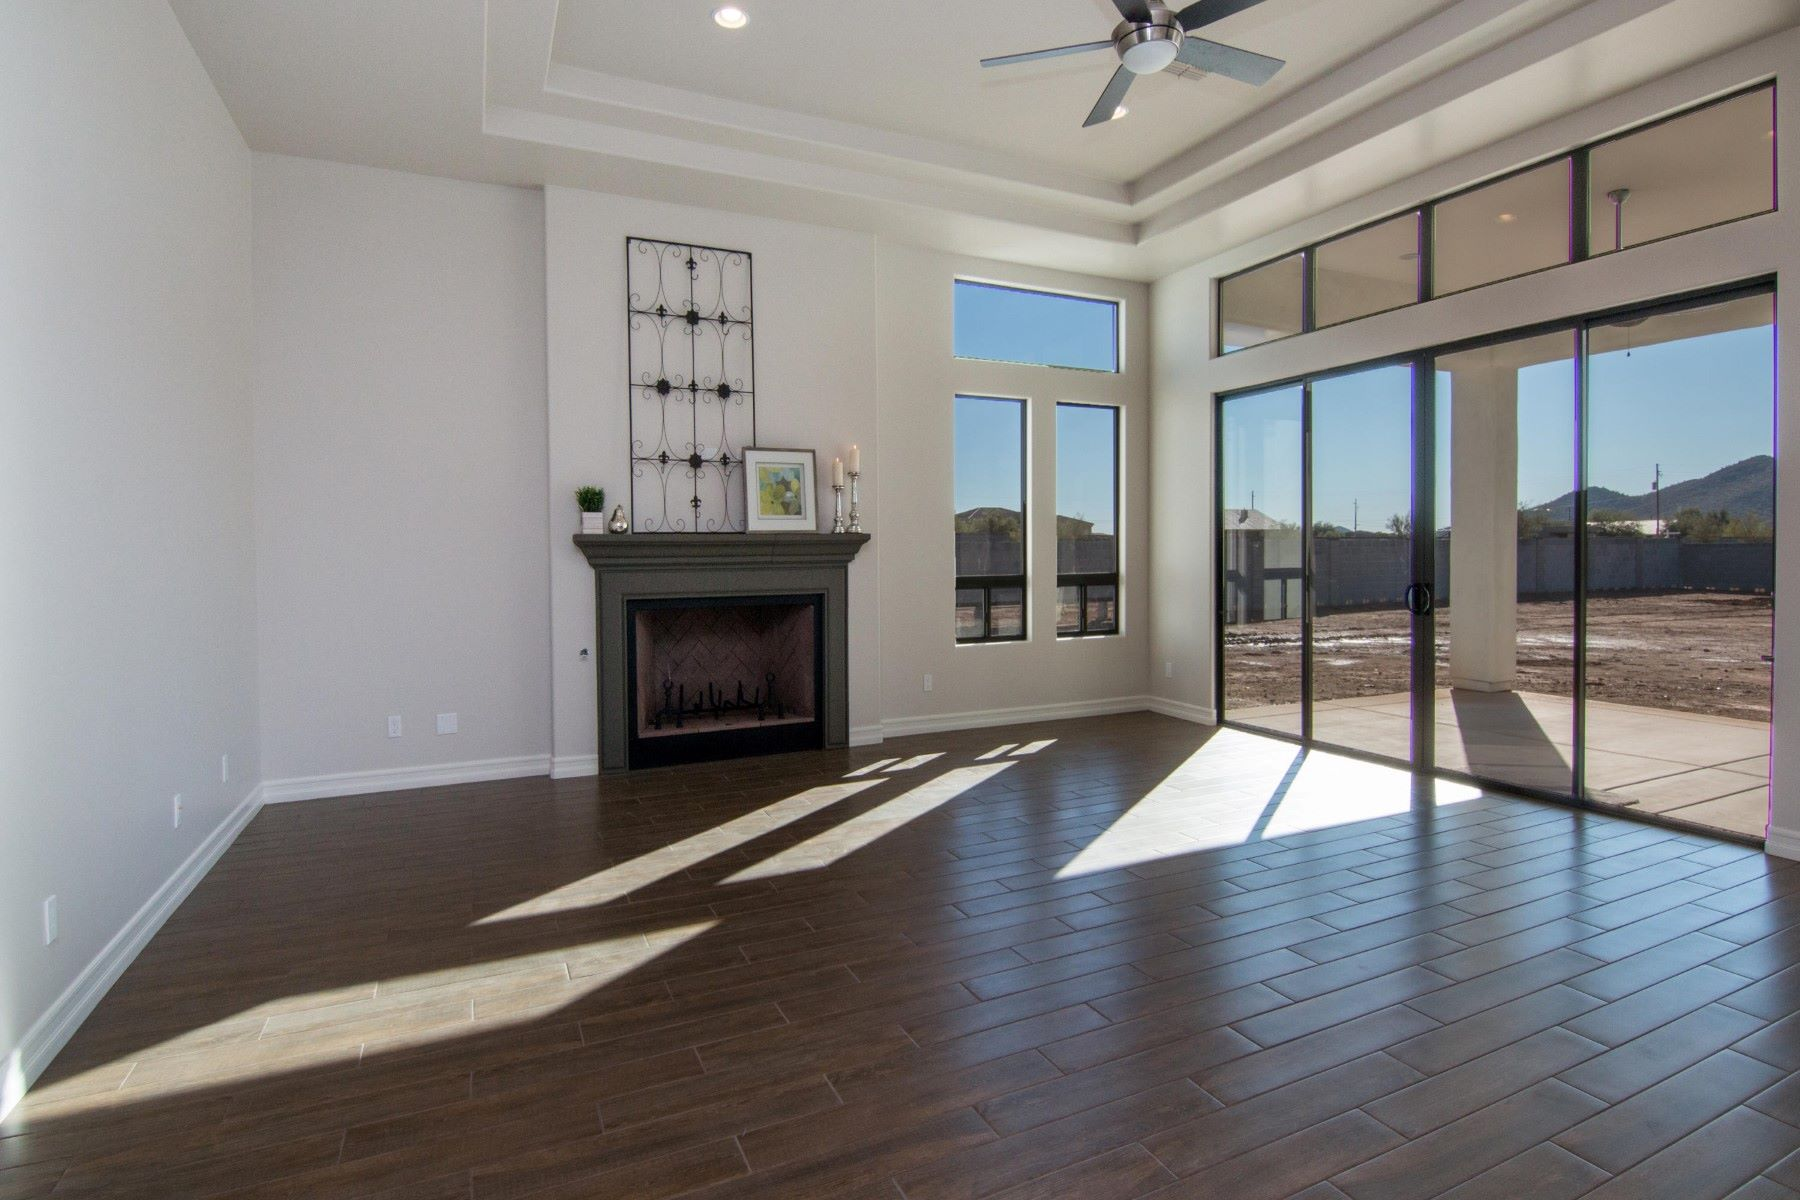 Single Family Home for Sale at Beautifully appointed Presidio custom home 28404 N 159th St Scottsdale, Arizona, 85262 United States